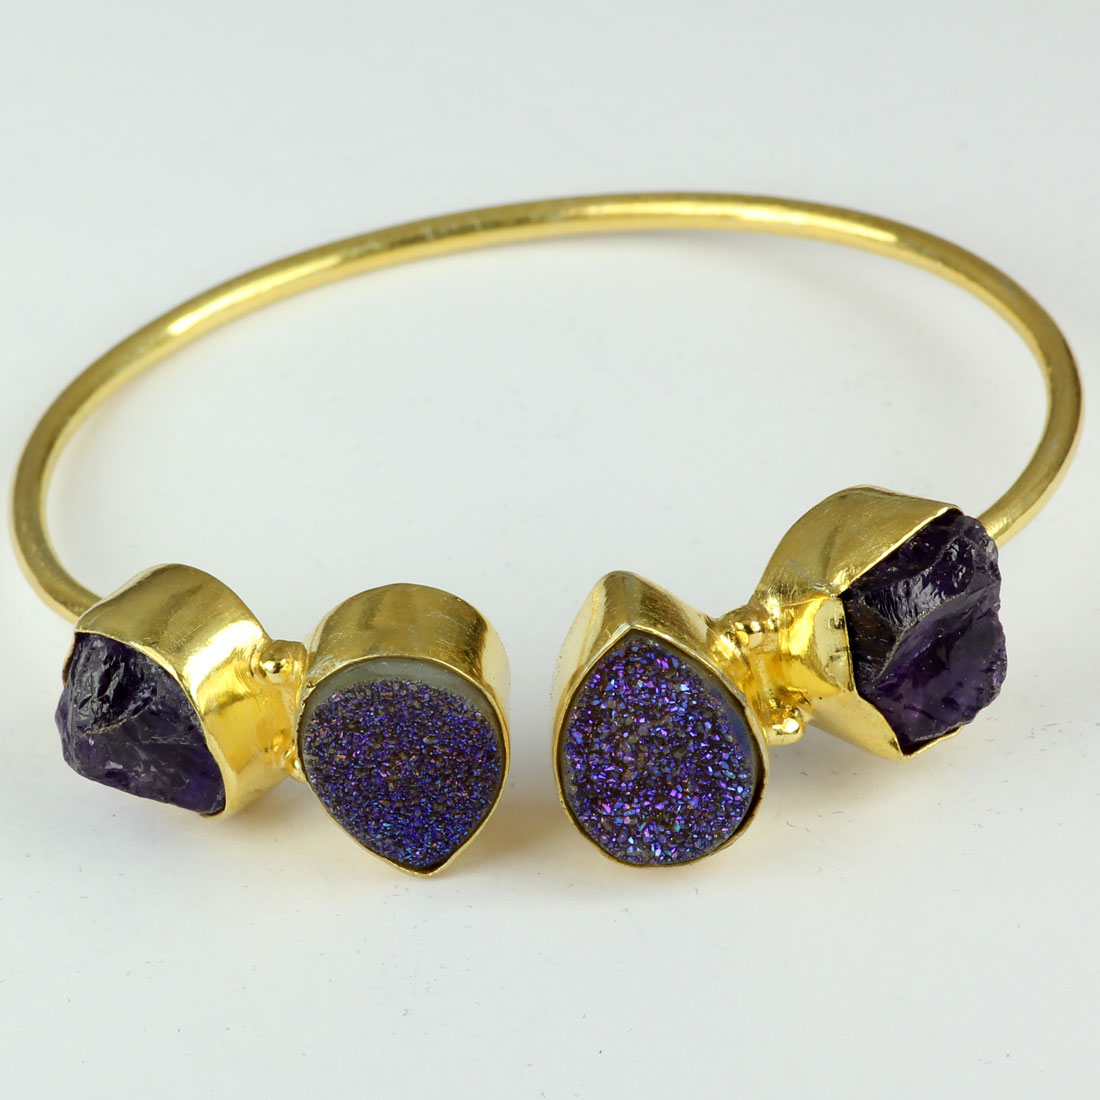 Amethyst Rough and Blue Druzy D - BN966-Fashionable Wholesale Handmade Mix Stones Brass Bracelets